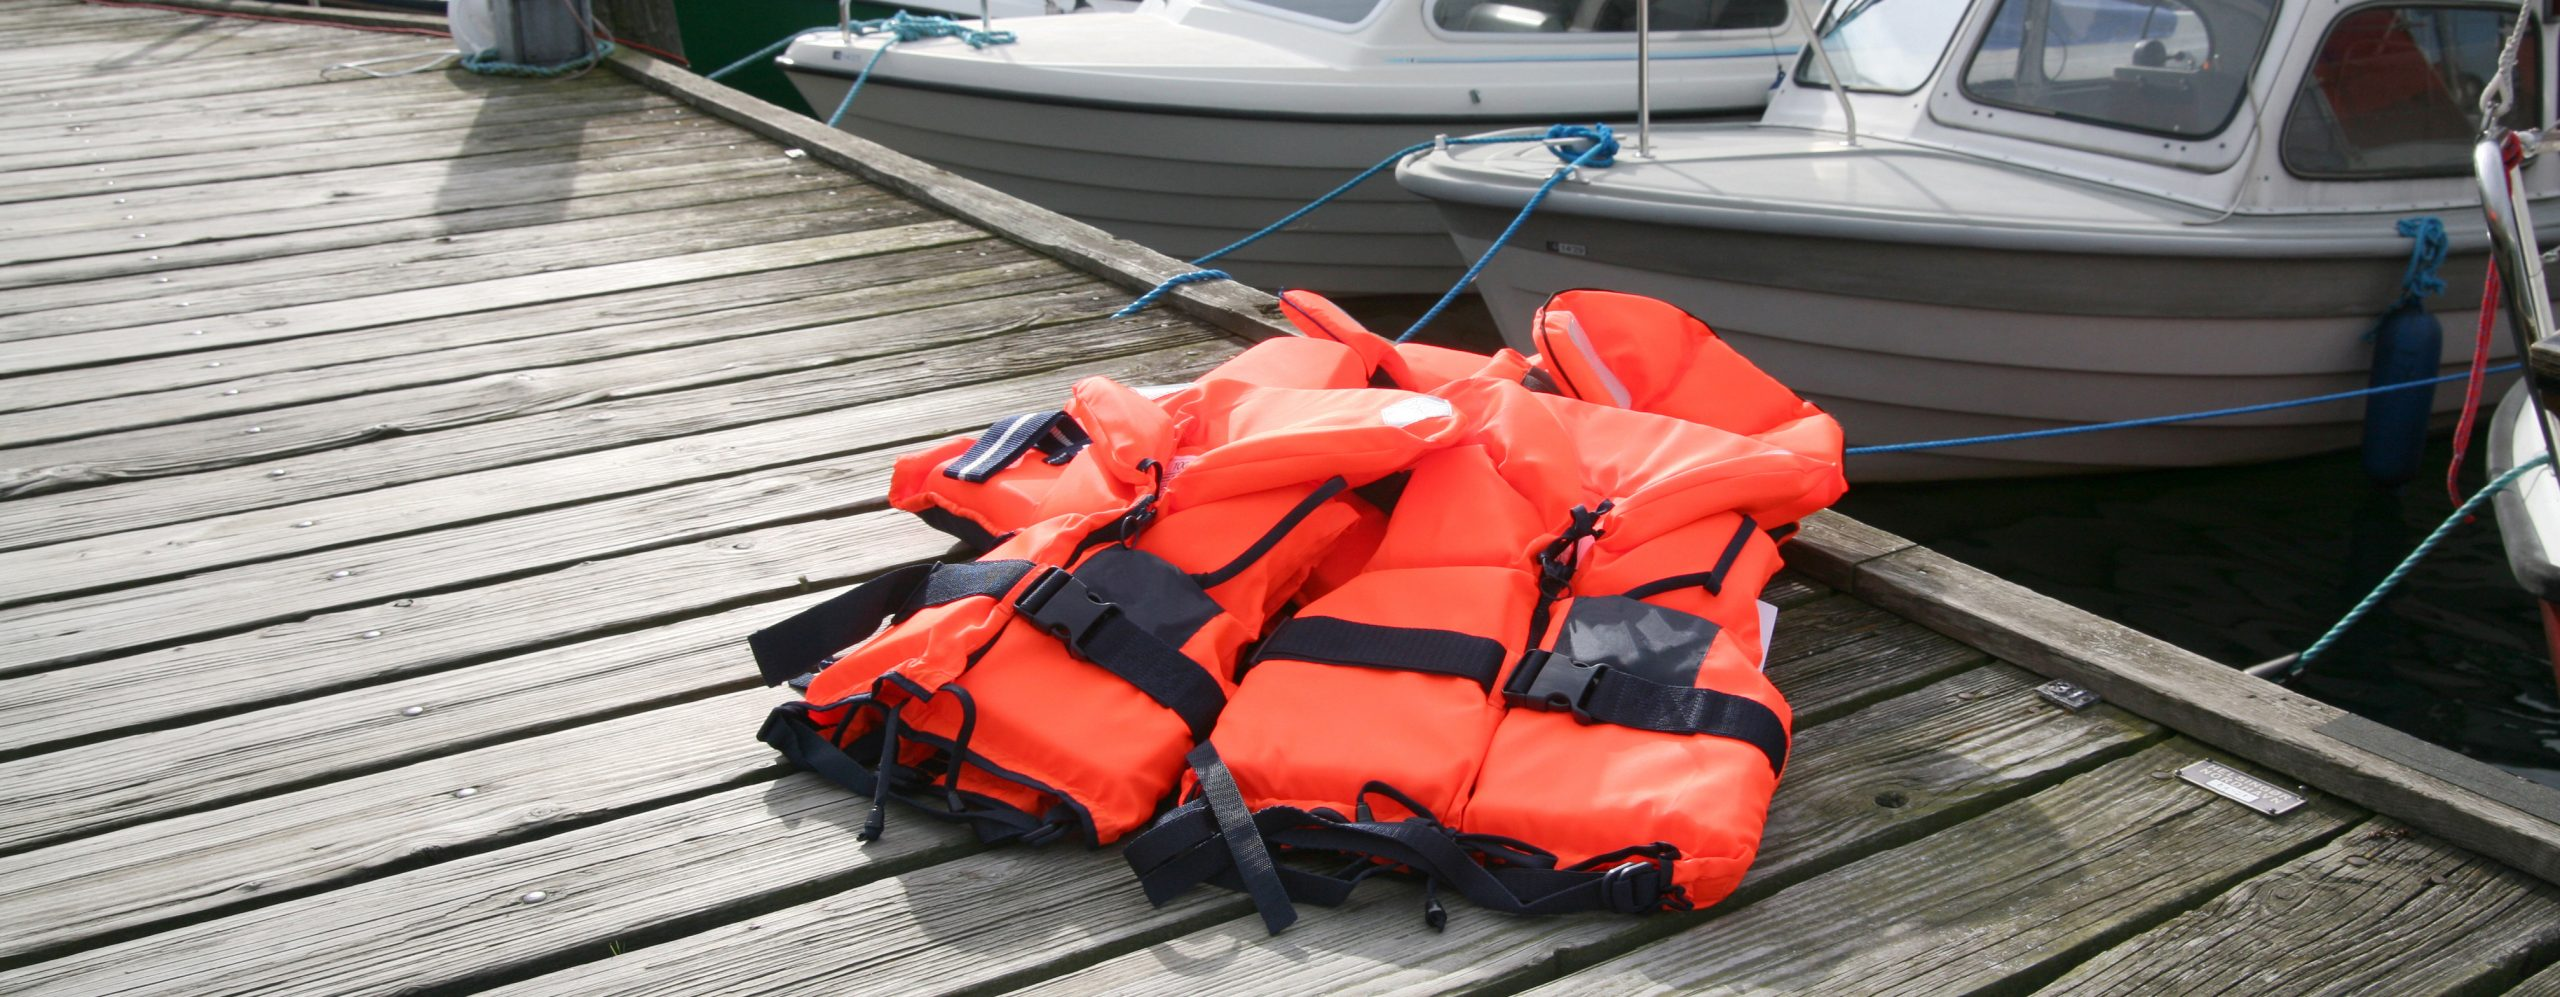 Life Jacket on deck